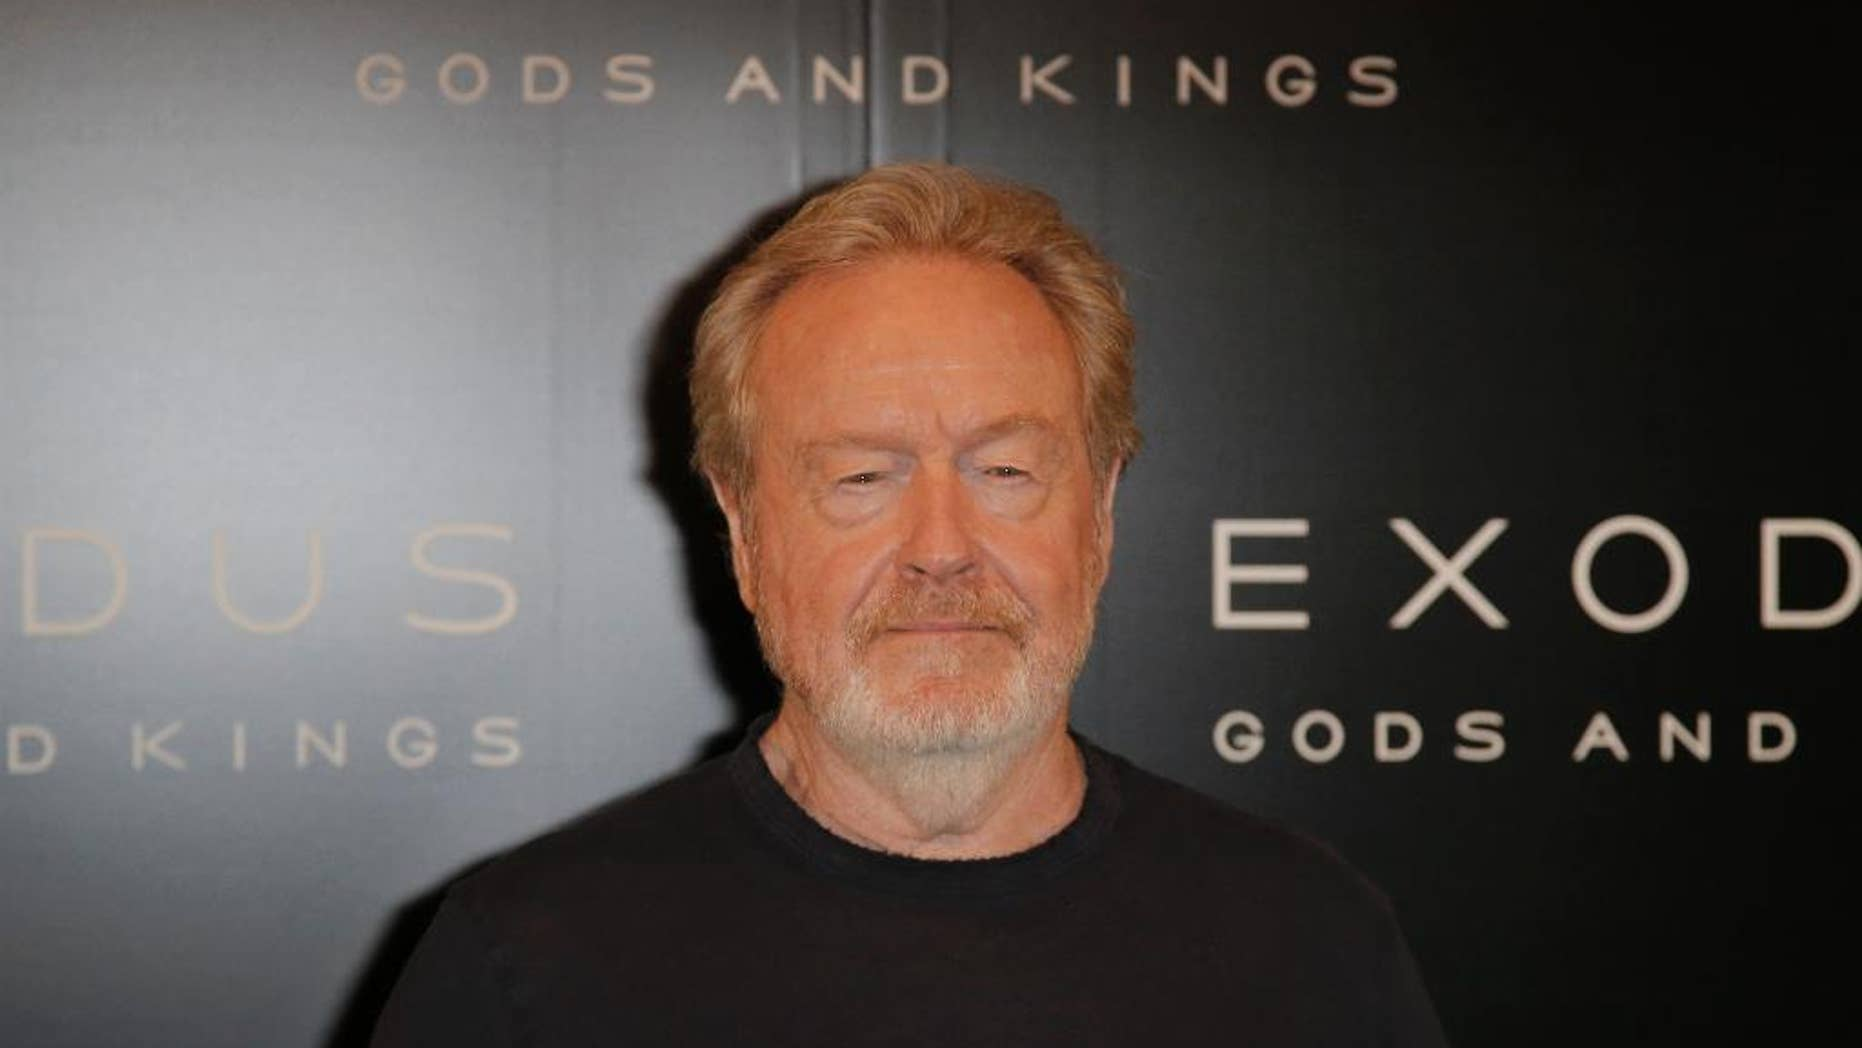 """In this Tuesday, Dec. 2, 2014 file photo, director Ridley Scott poses during a photocall for his film """"Exodus : Gods and Kings"""" in Paris. Scott did not originally want to make """"Exodus: Gods and Kings."""" """"It's biblical, and I was afraid of all those associations,"""" the 77-year-old filmmaker said. (AP Photo/Francois Mori, File)"""